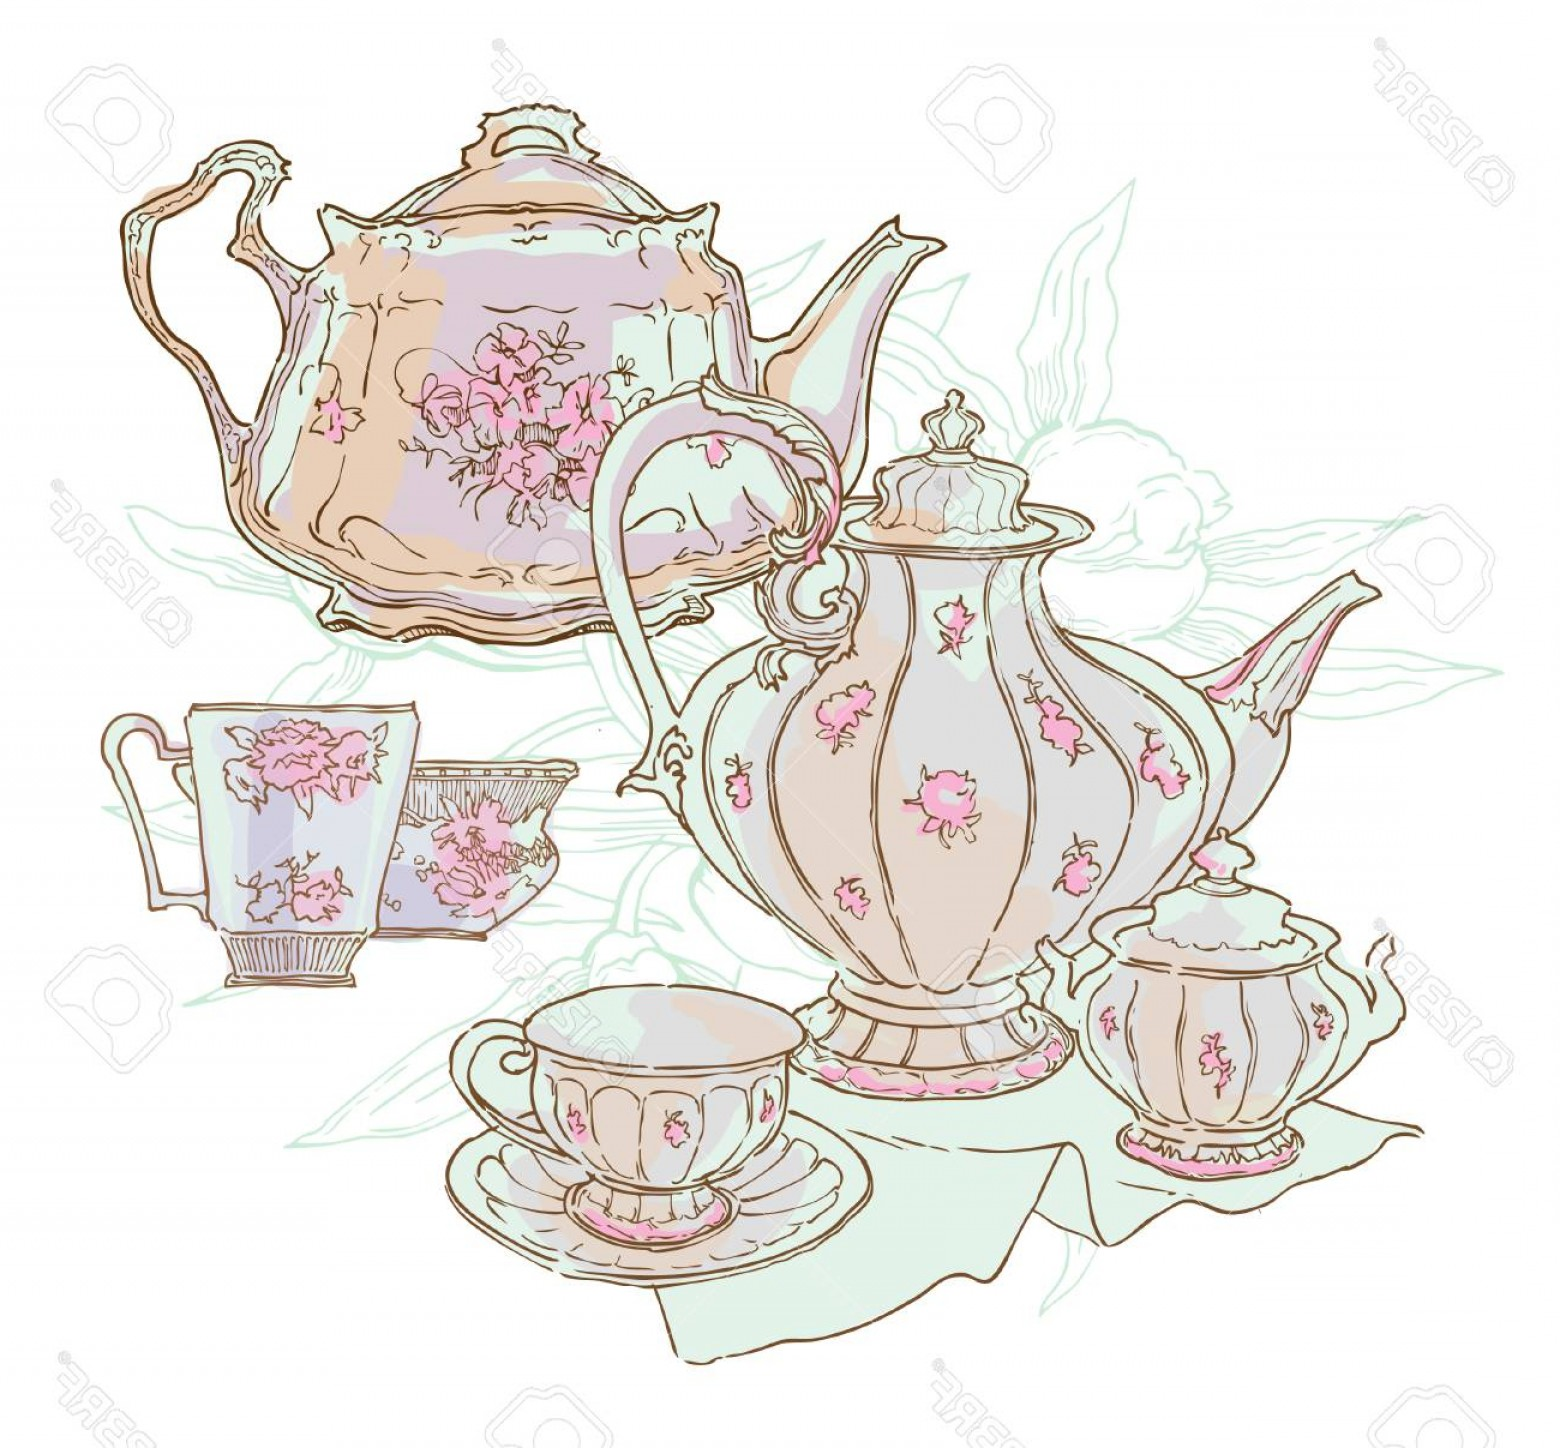 Vintage Tea Cup Vector: Photostock Vector Vintage Tea Set Service Vector Illustration Teapot And Cups Drawing Cosy Table Set Floral Illustrati